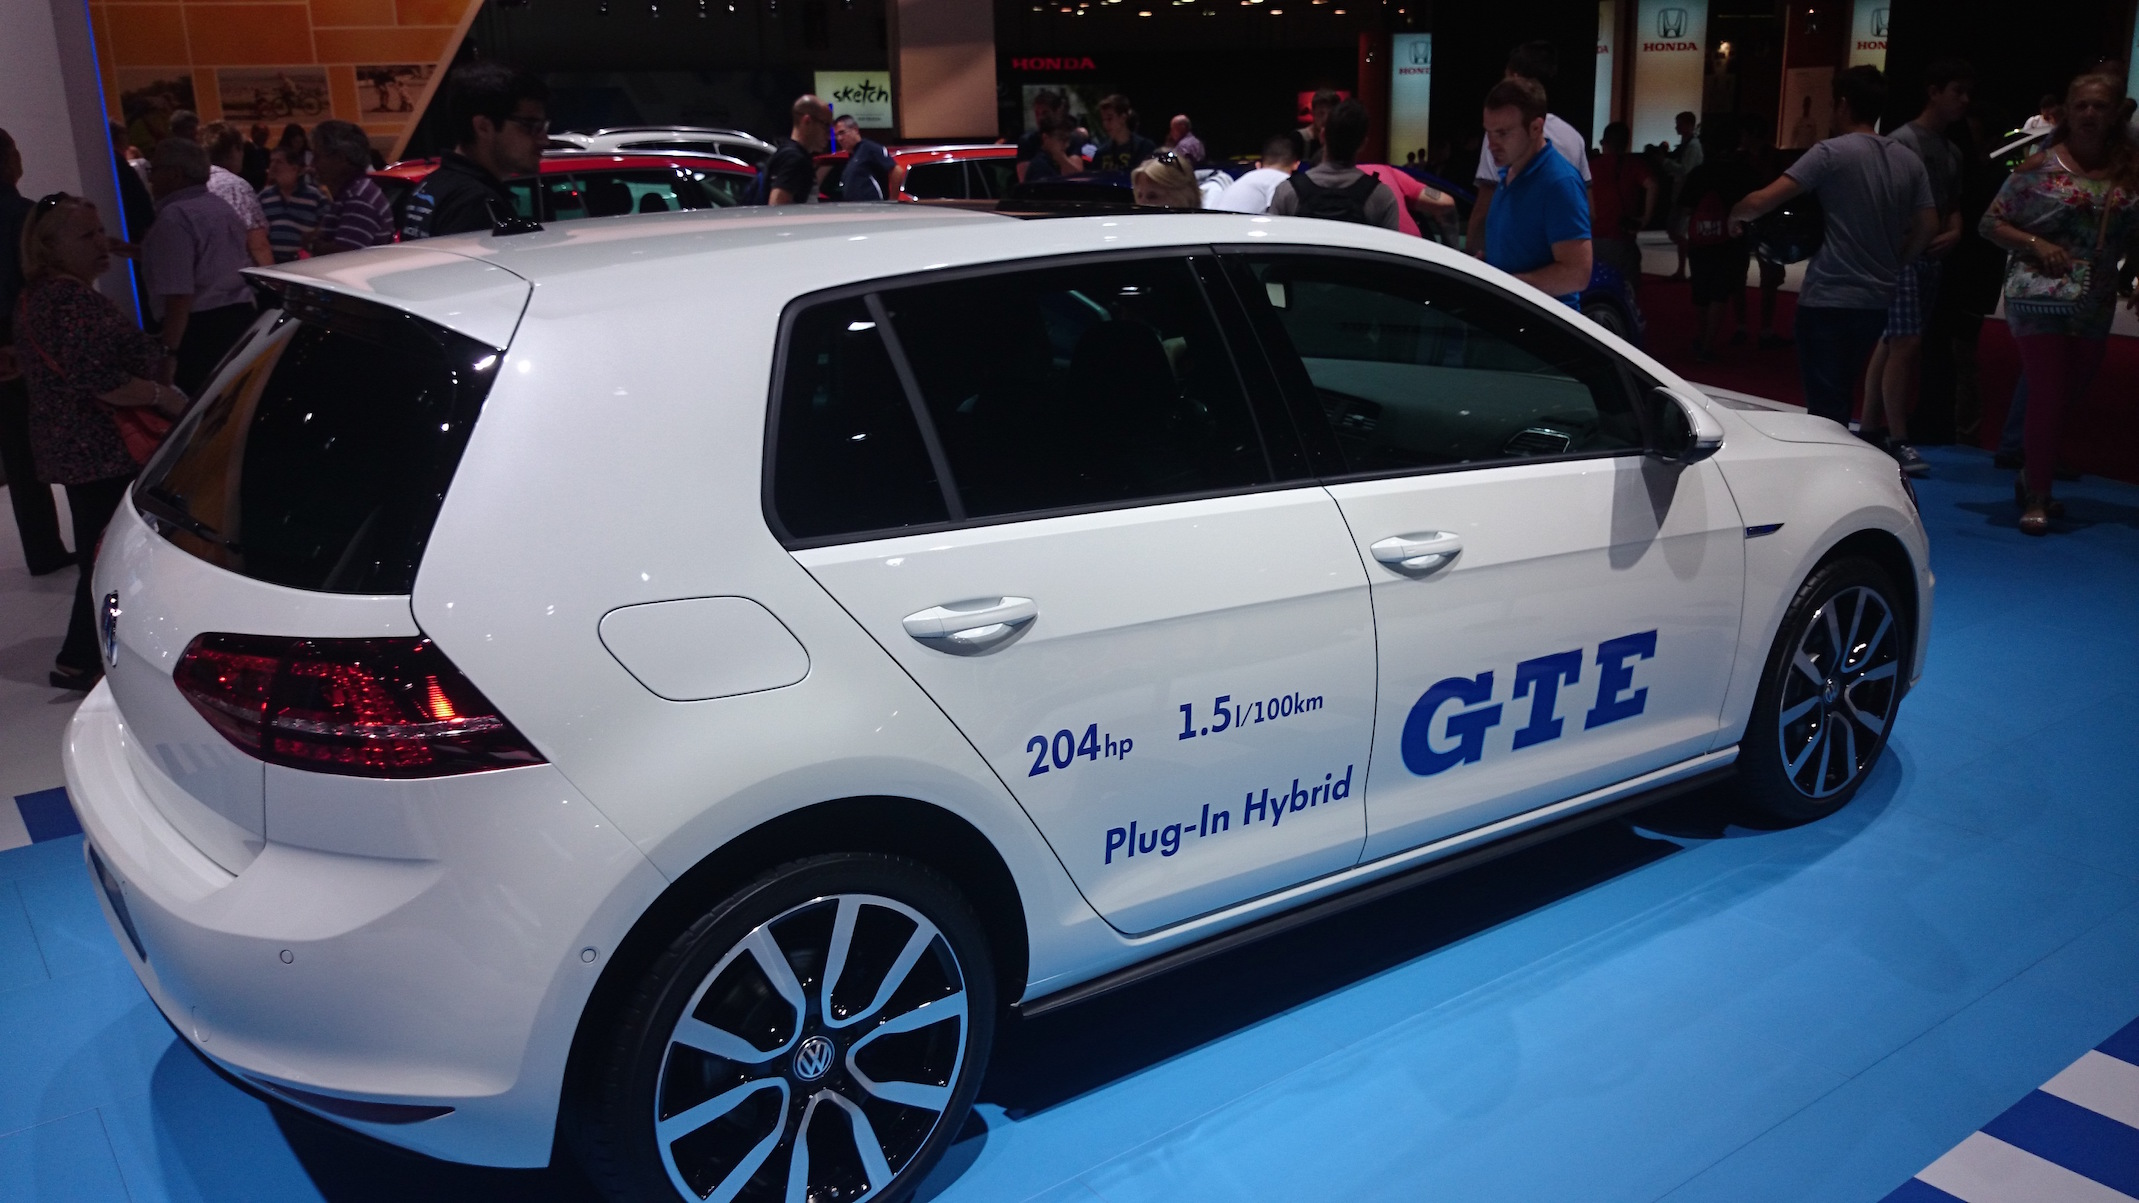 Golf GTE Plug-in